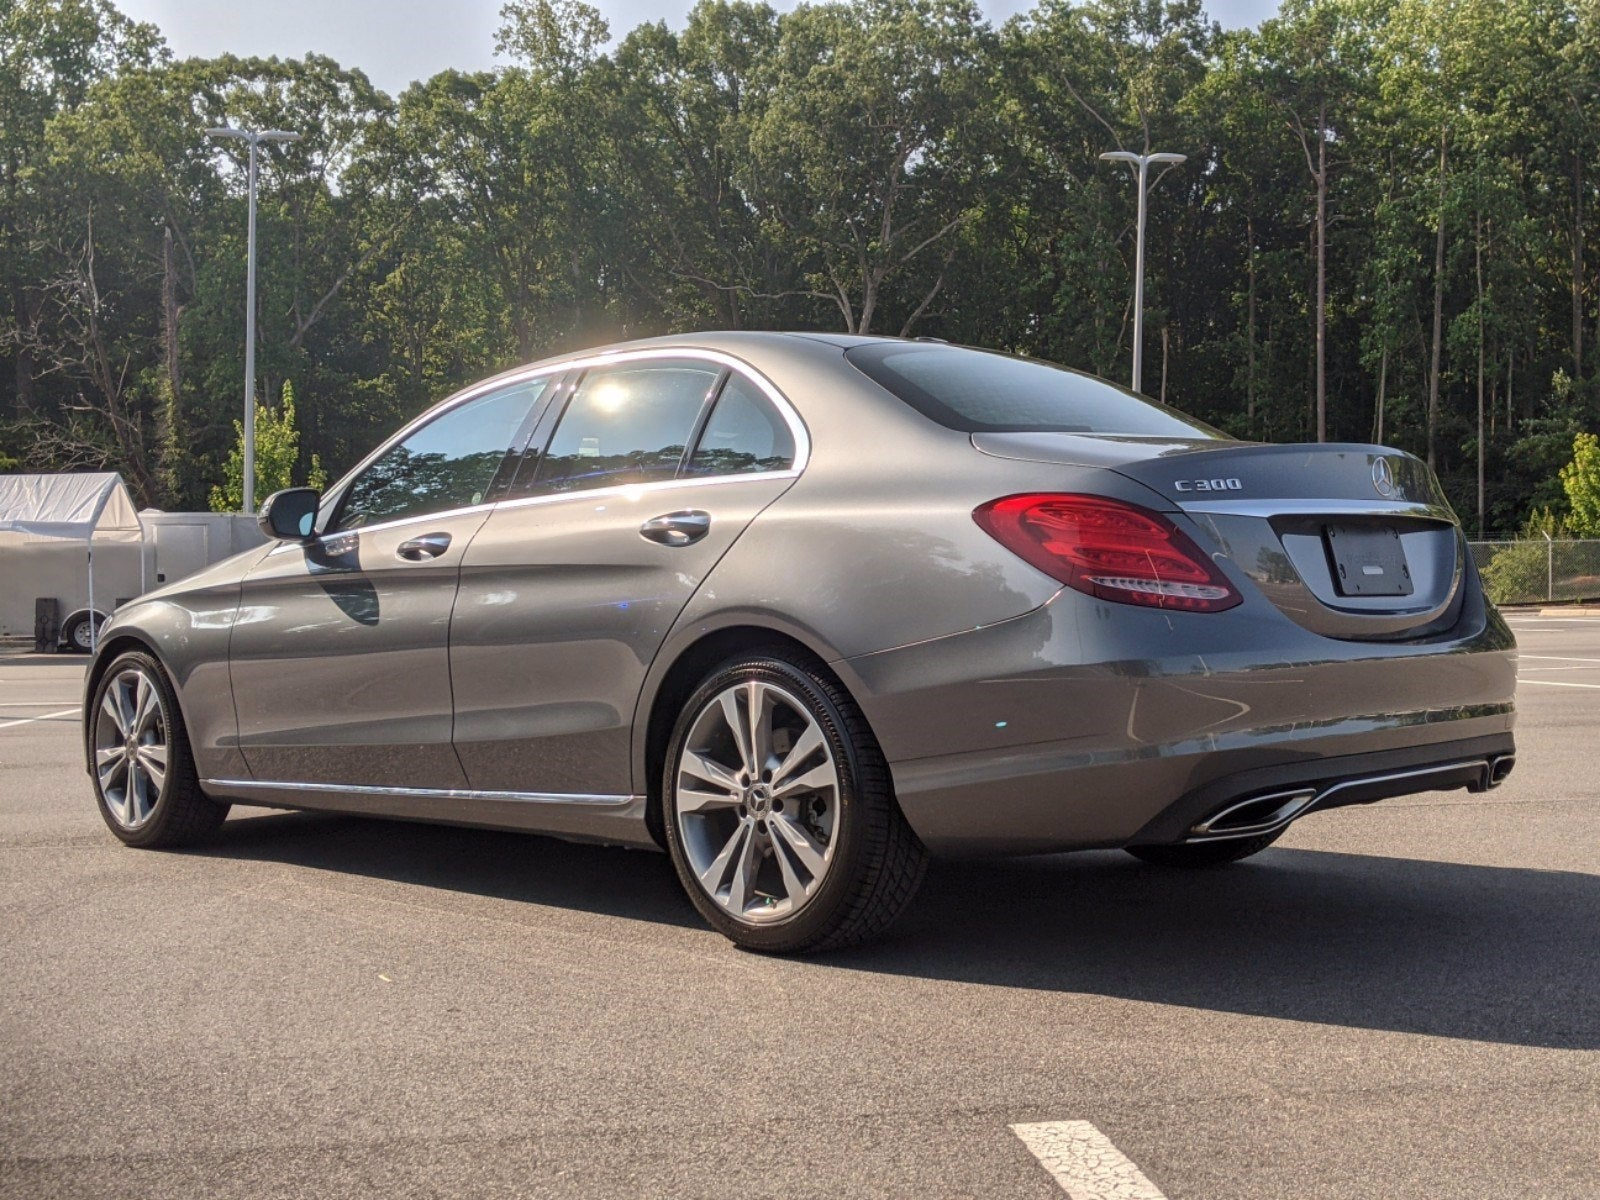 Used 2018 Mercedes Benz C Class For Sale Raleigh Nc 55swf4jb6ju267161